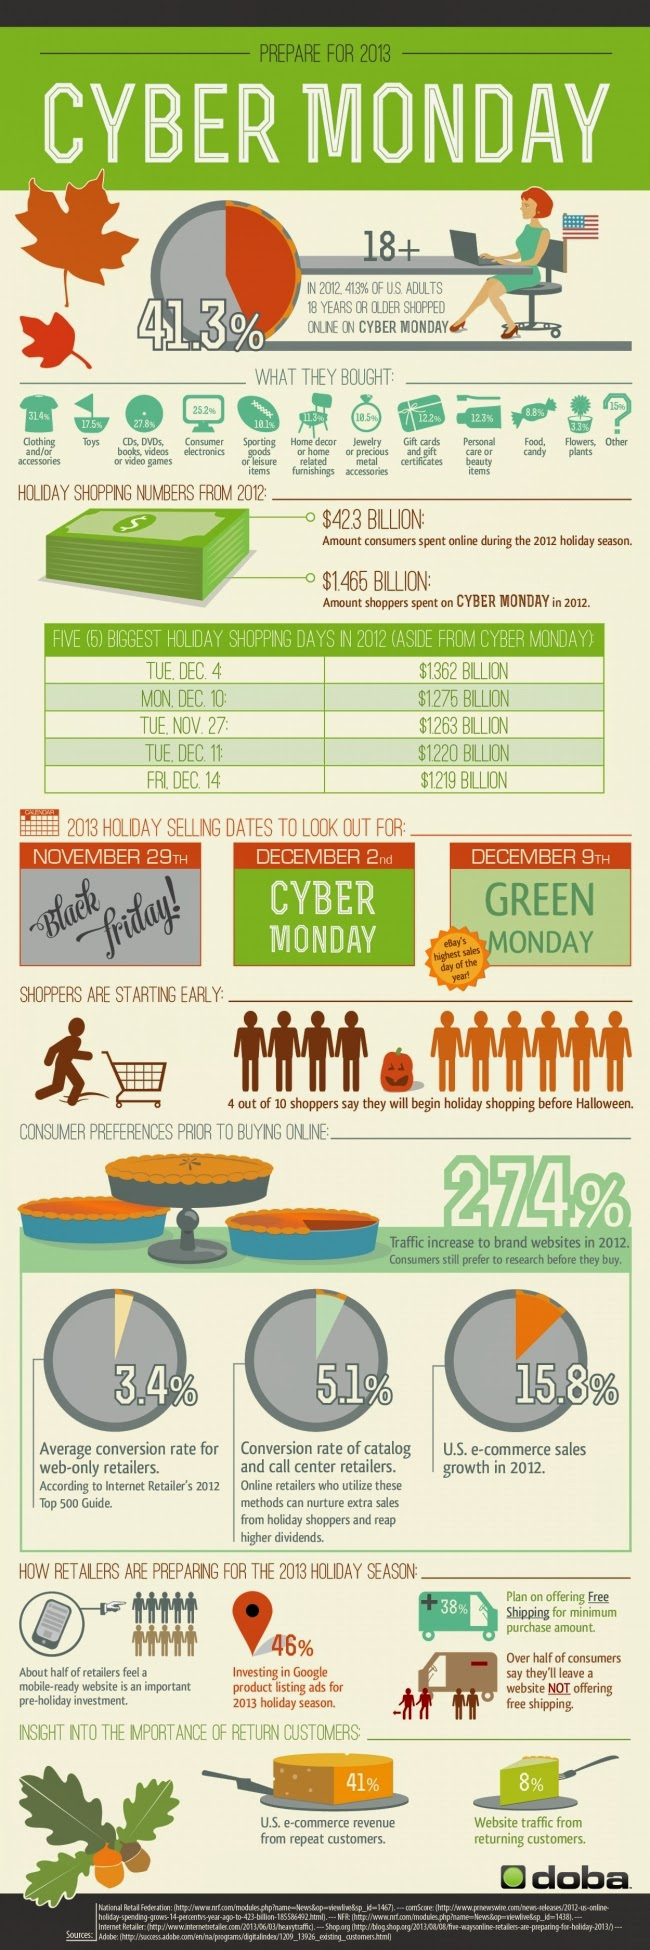 business, cyber monday, infographic, business technology, productivity techniques, technology, Information,